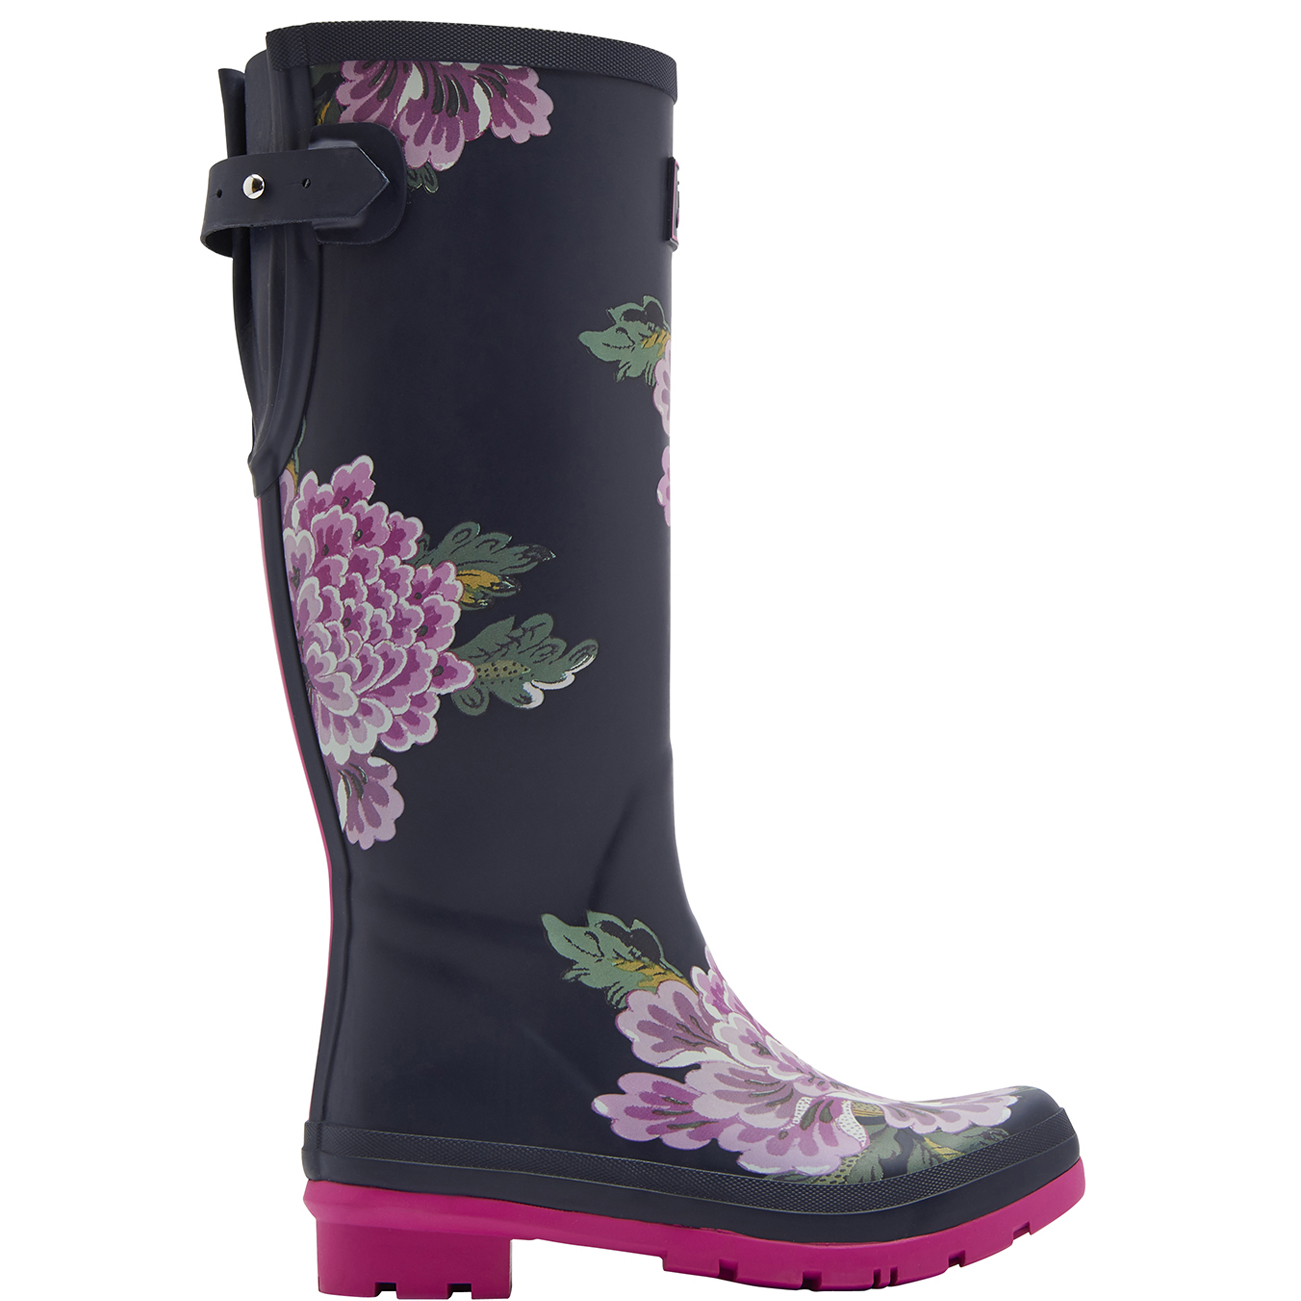 Womens Joules Printed Wellies Waterproof Rubber Winter Wellington Boots UK  3-8 2b6dfcfe5